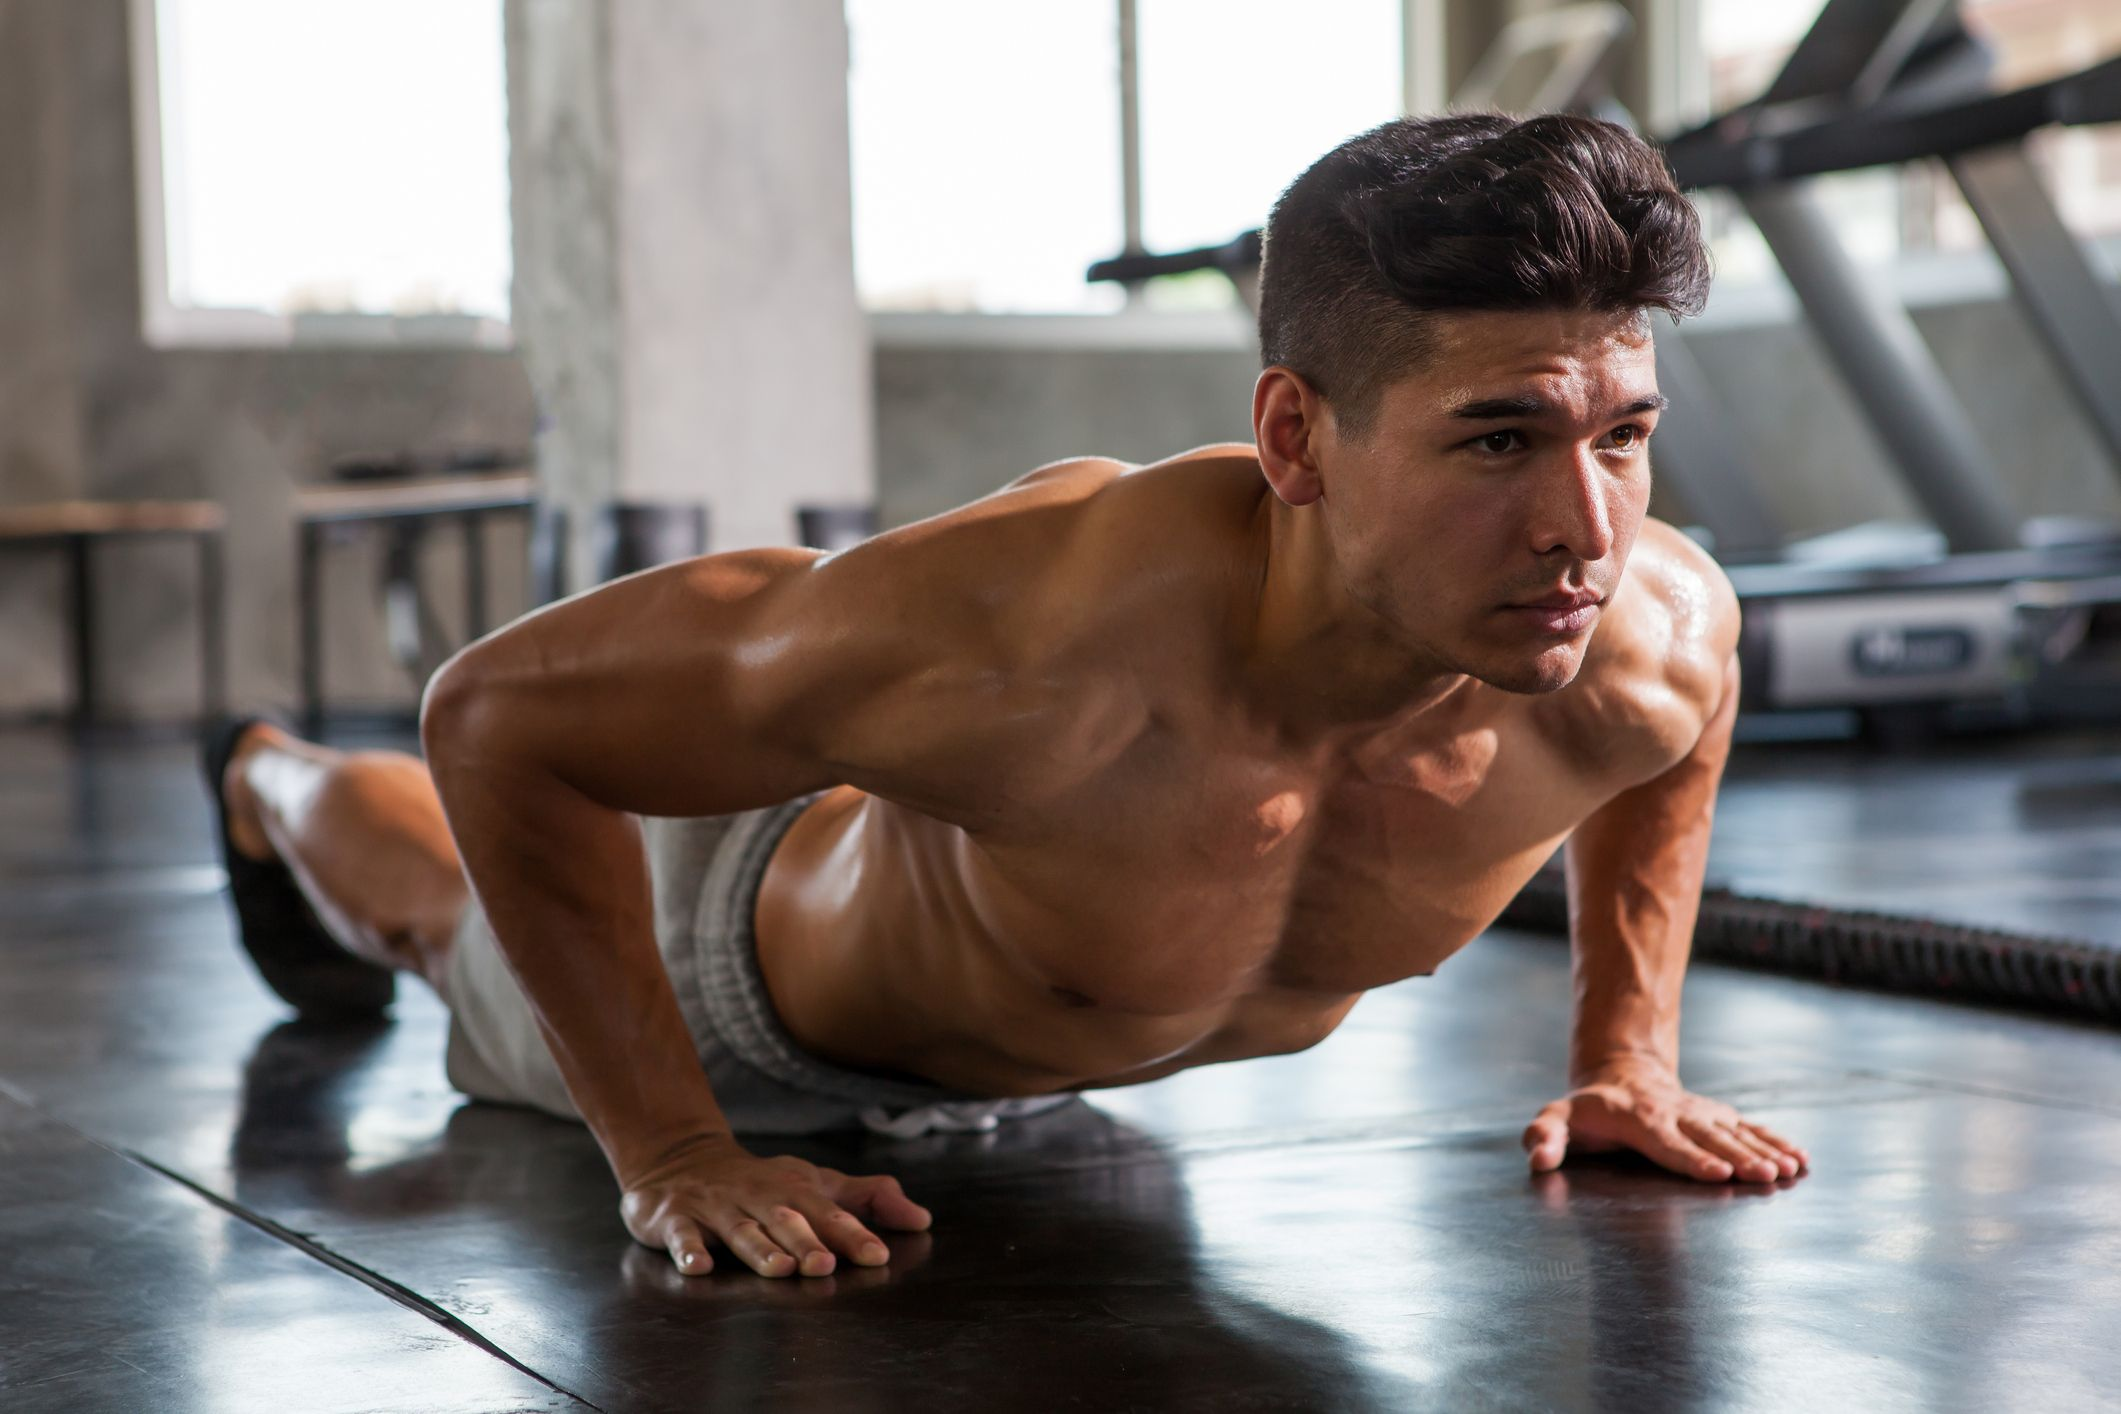 This 4-Move Ladder Workout Will Finish Off Your Toughest Training Sessions